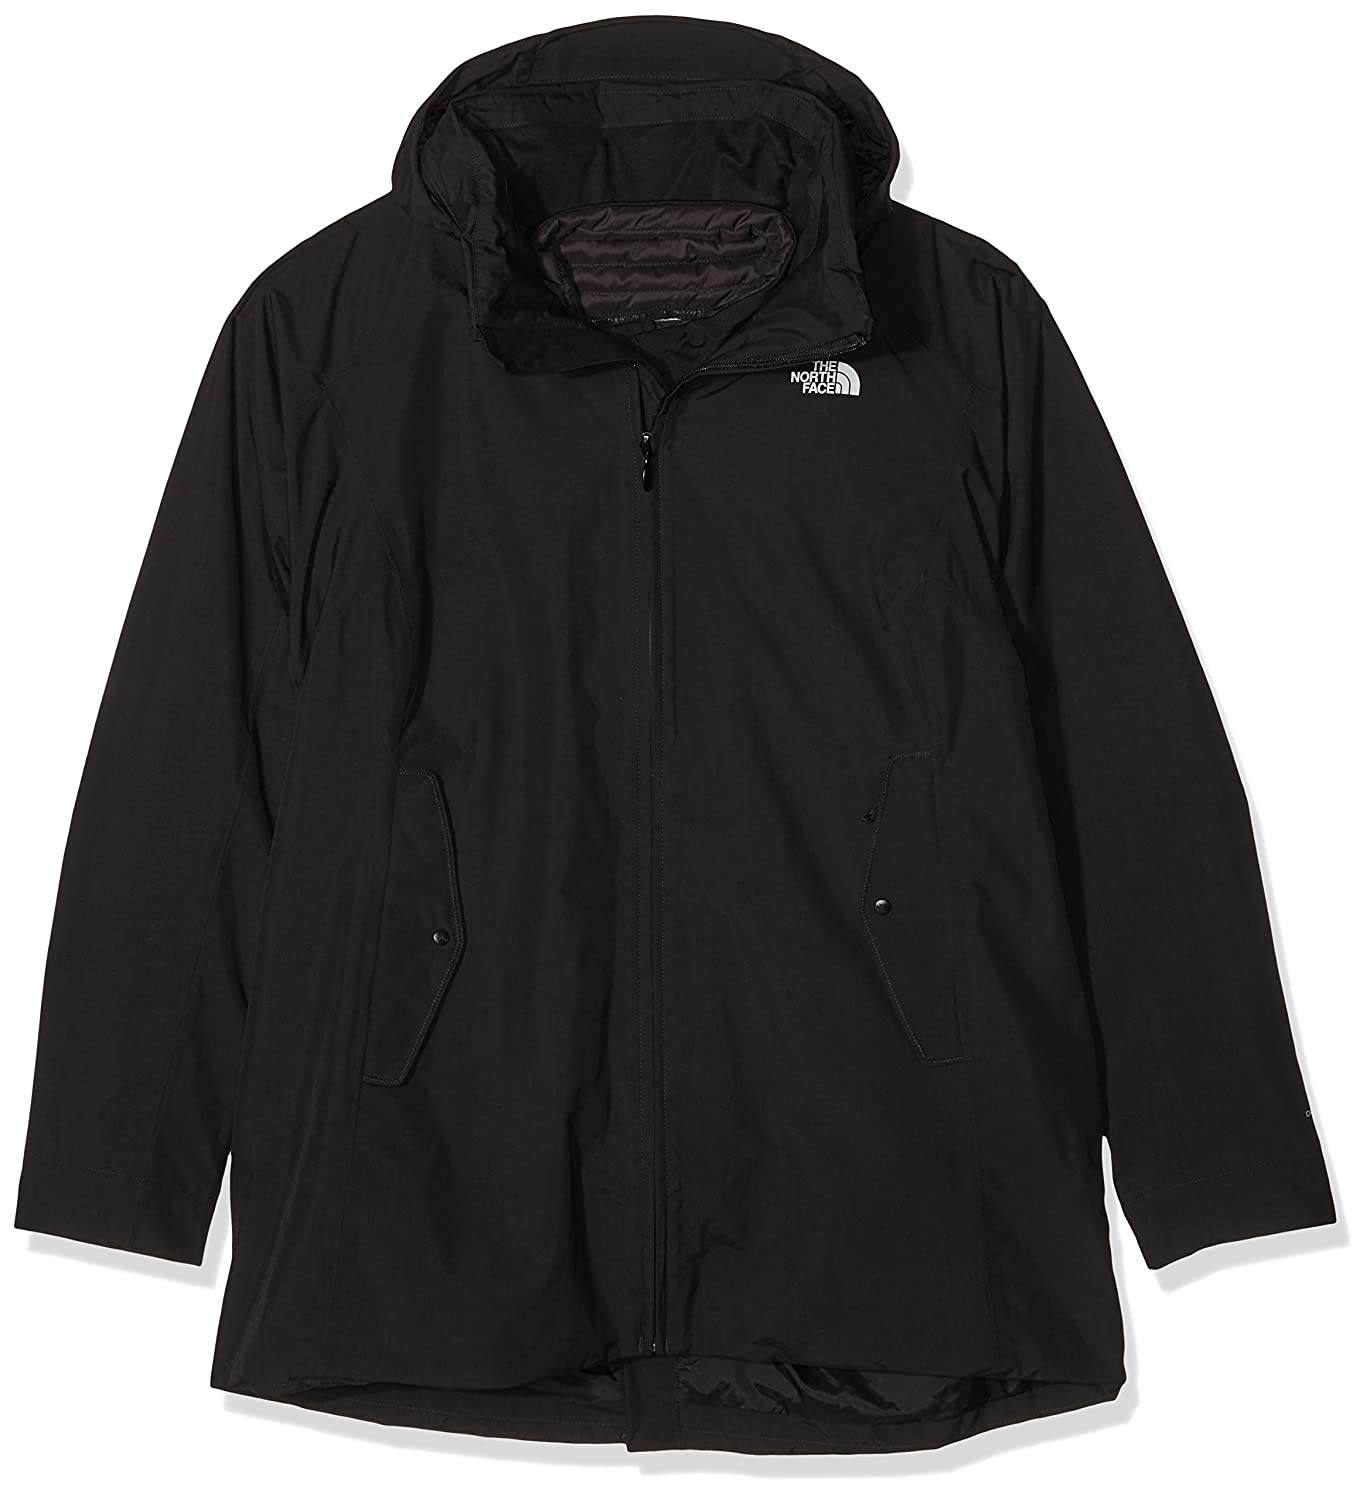 TALLA S. The North Face W Brownwood Triclimate Jacket Chaqueta, Mujer